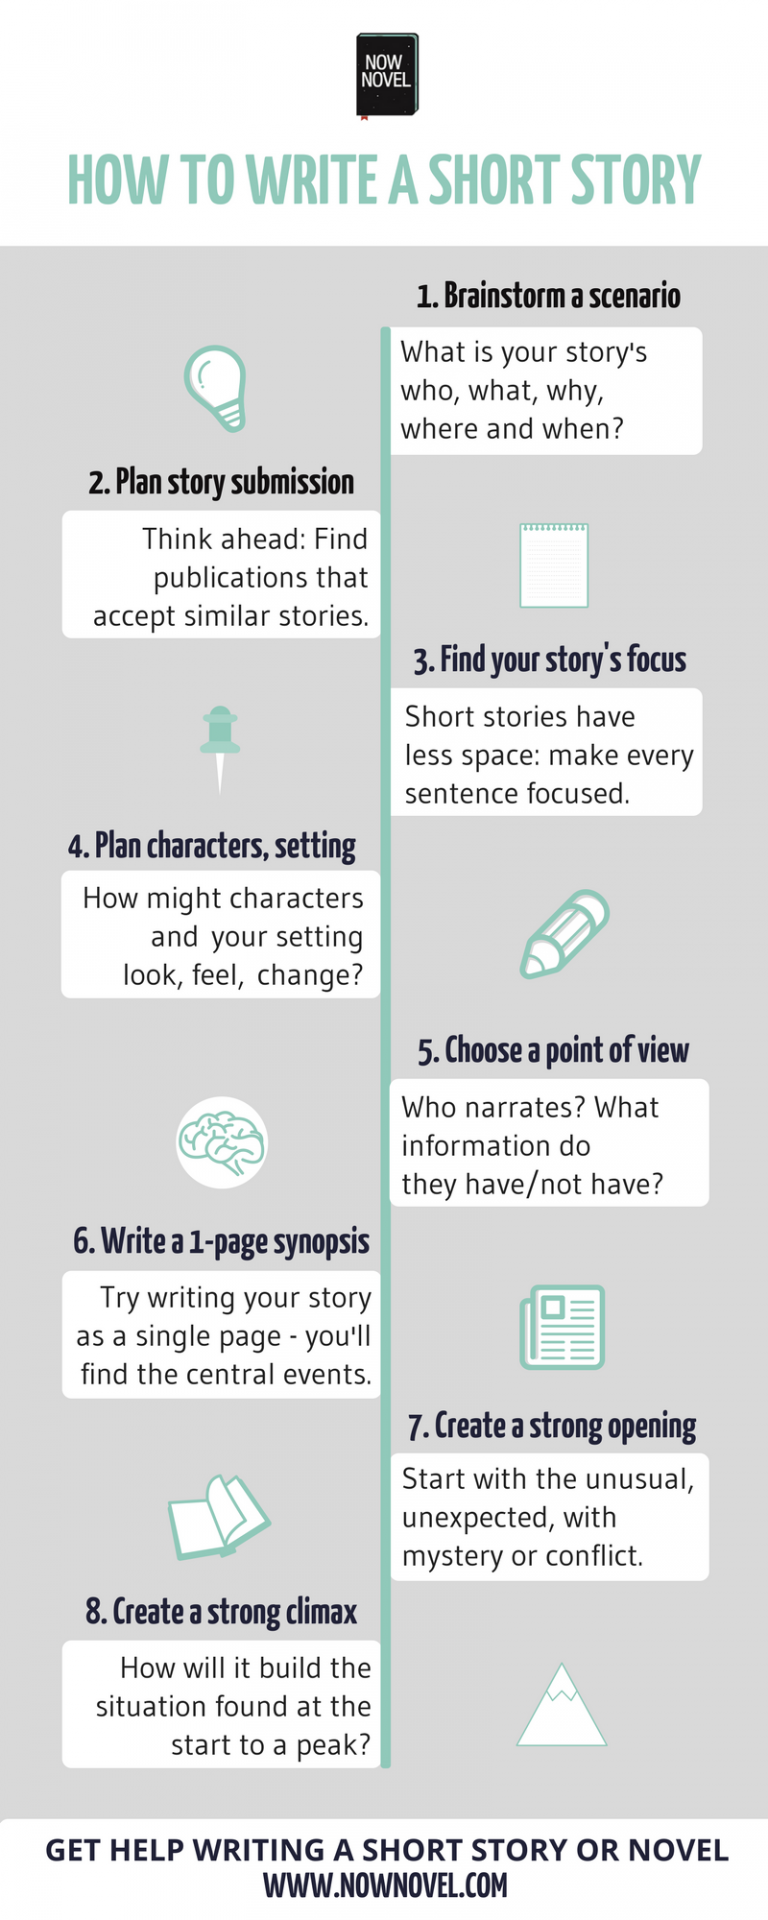 How To Write A Short Story 10 Steps Now Novel Writing Tips Book Writing Tips Writing [ 1920 x 768 Pixel ]